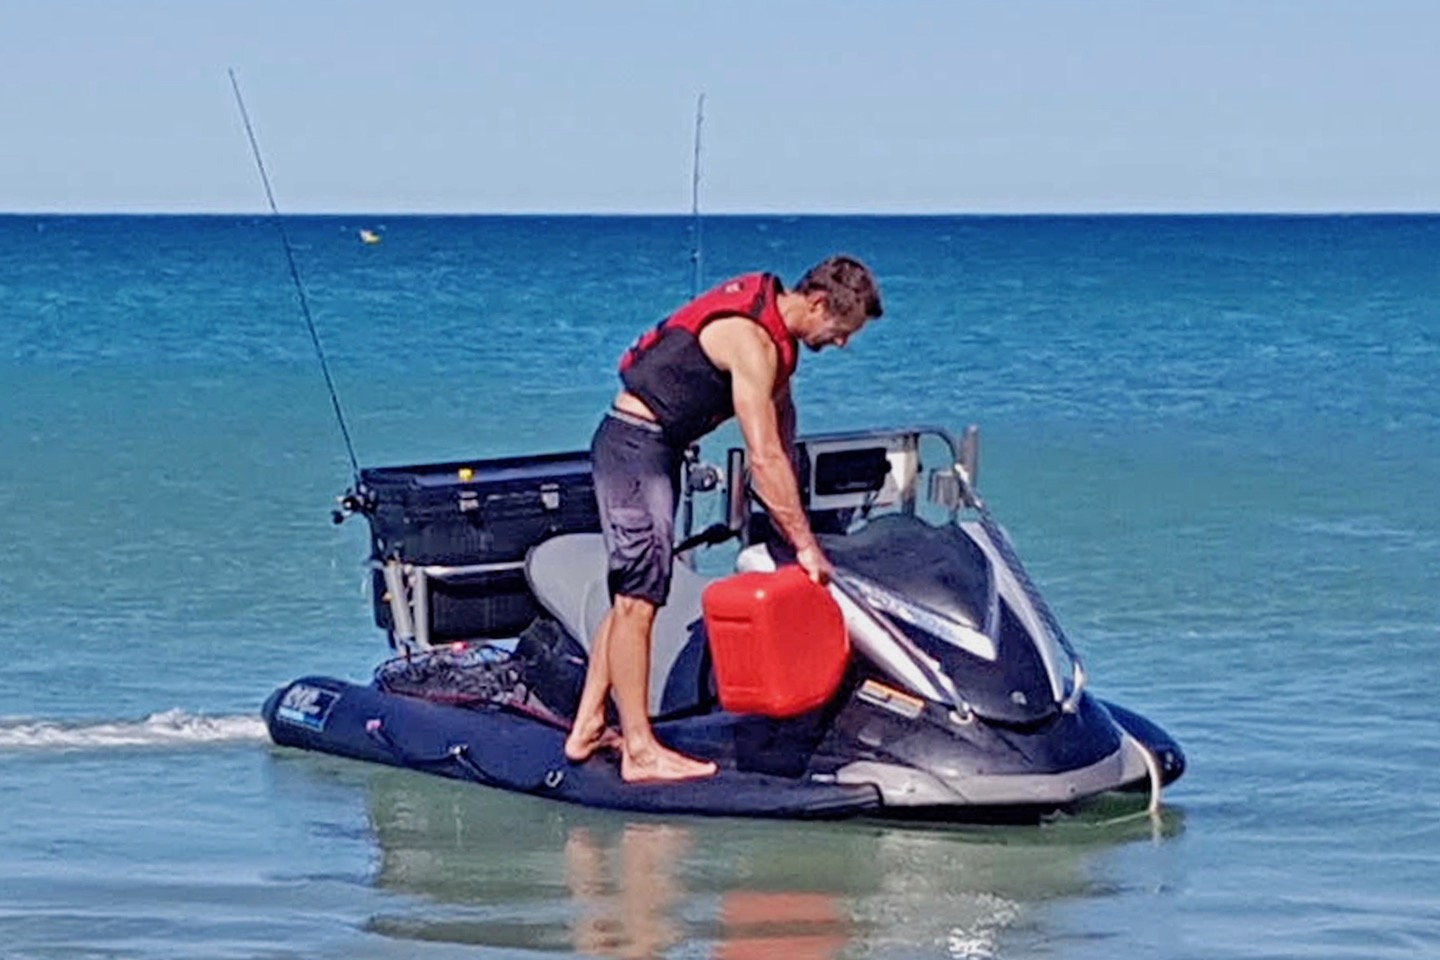 PWC inflatable stabilizer sponson enables standing